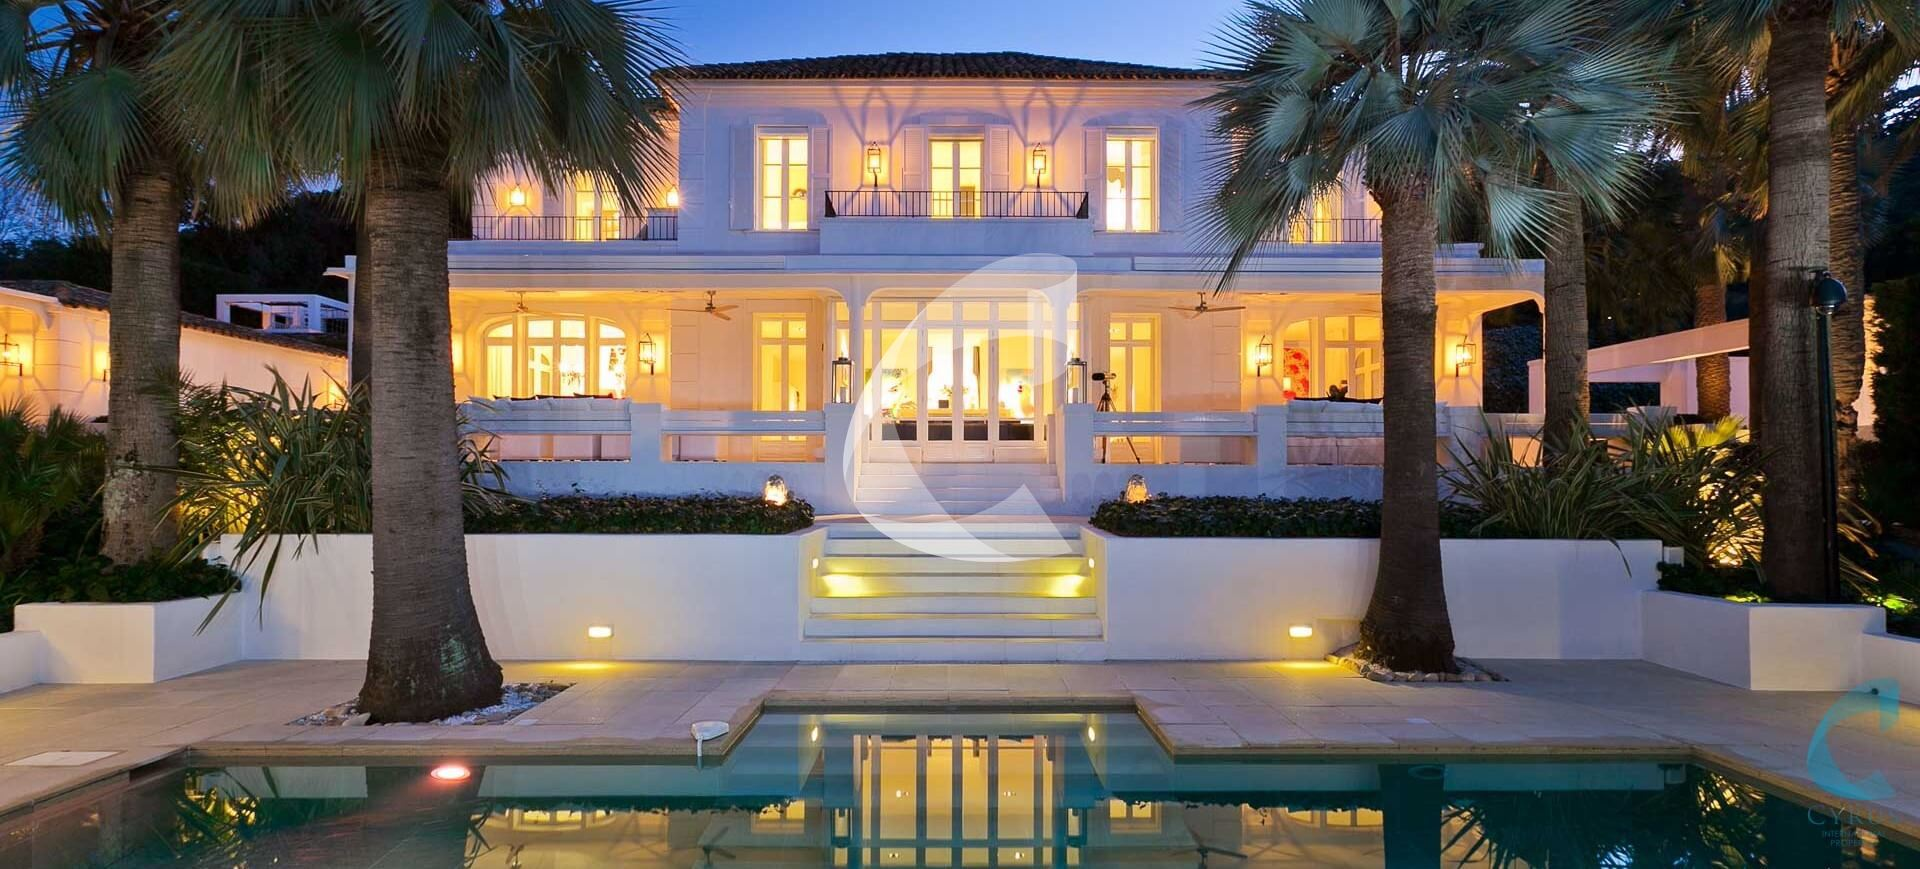 Luxury Villas In Saint Tropez Cyrus International